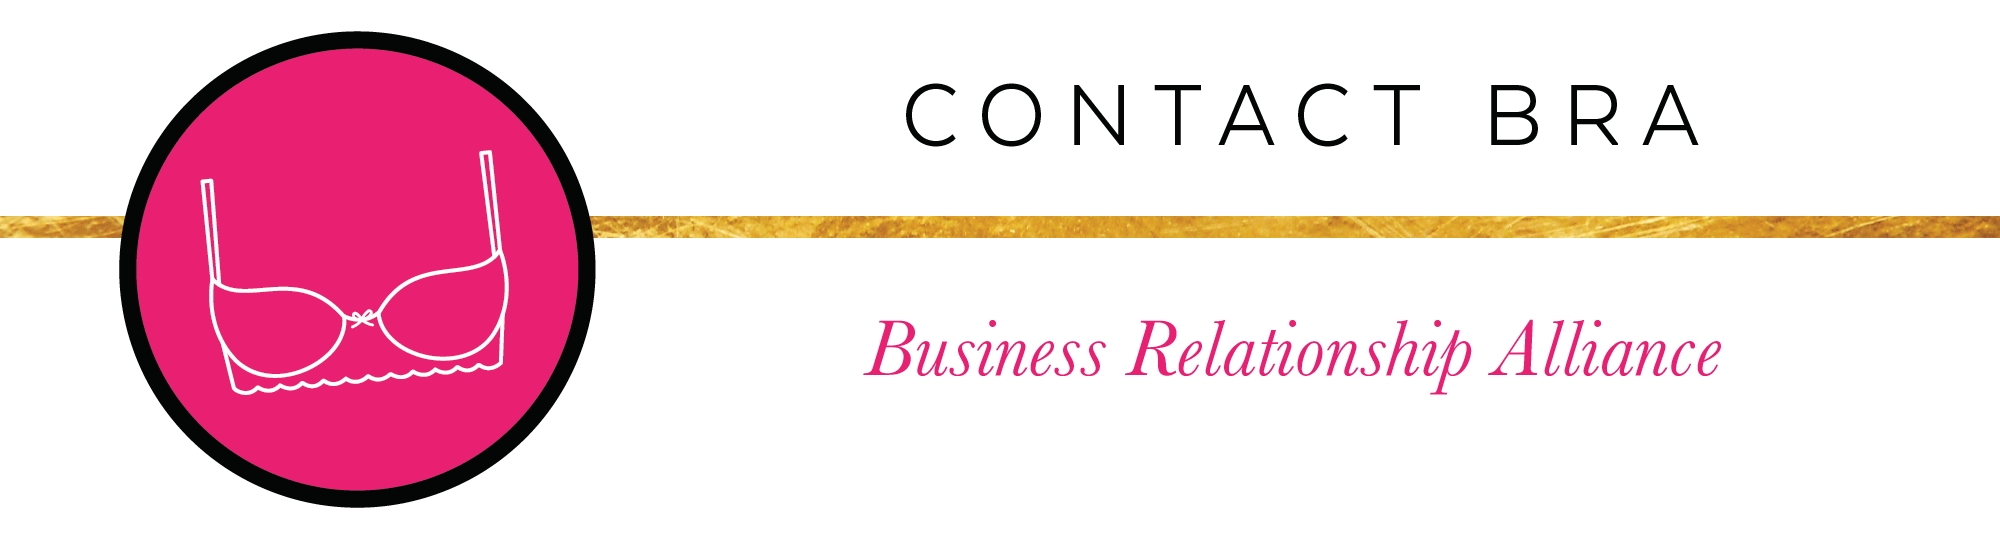 Get in touch with us at B.r.A. Business Relationship alliance in los angeles california